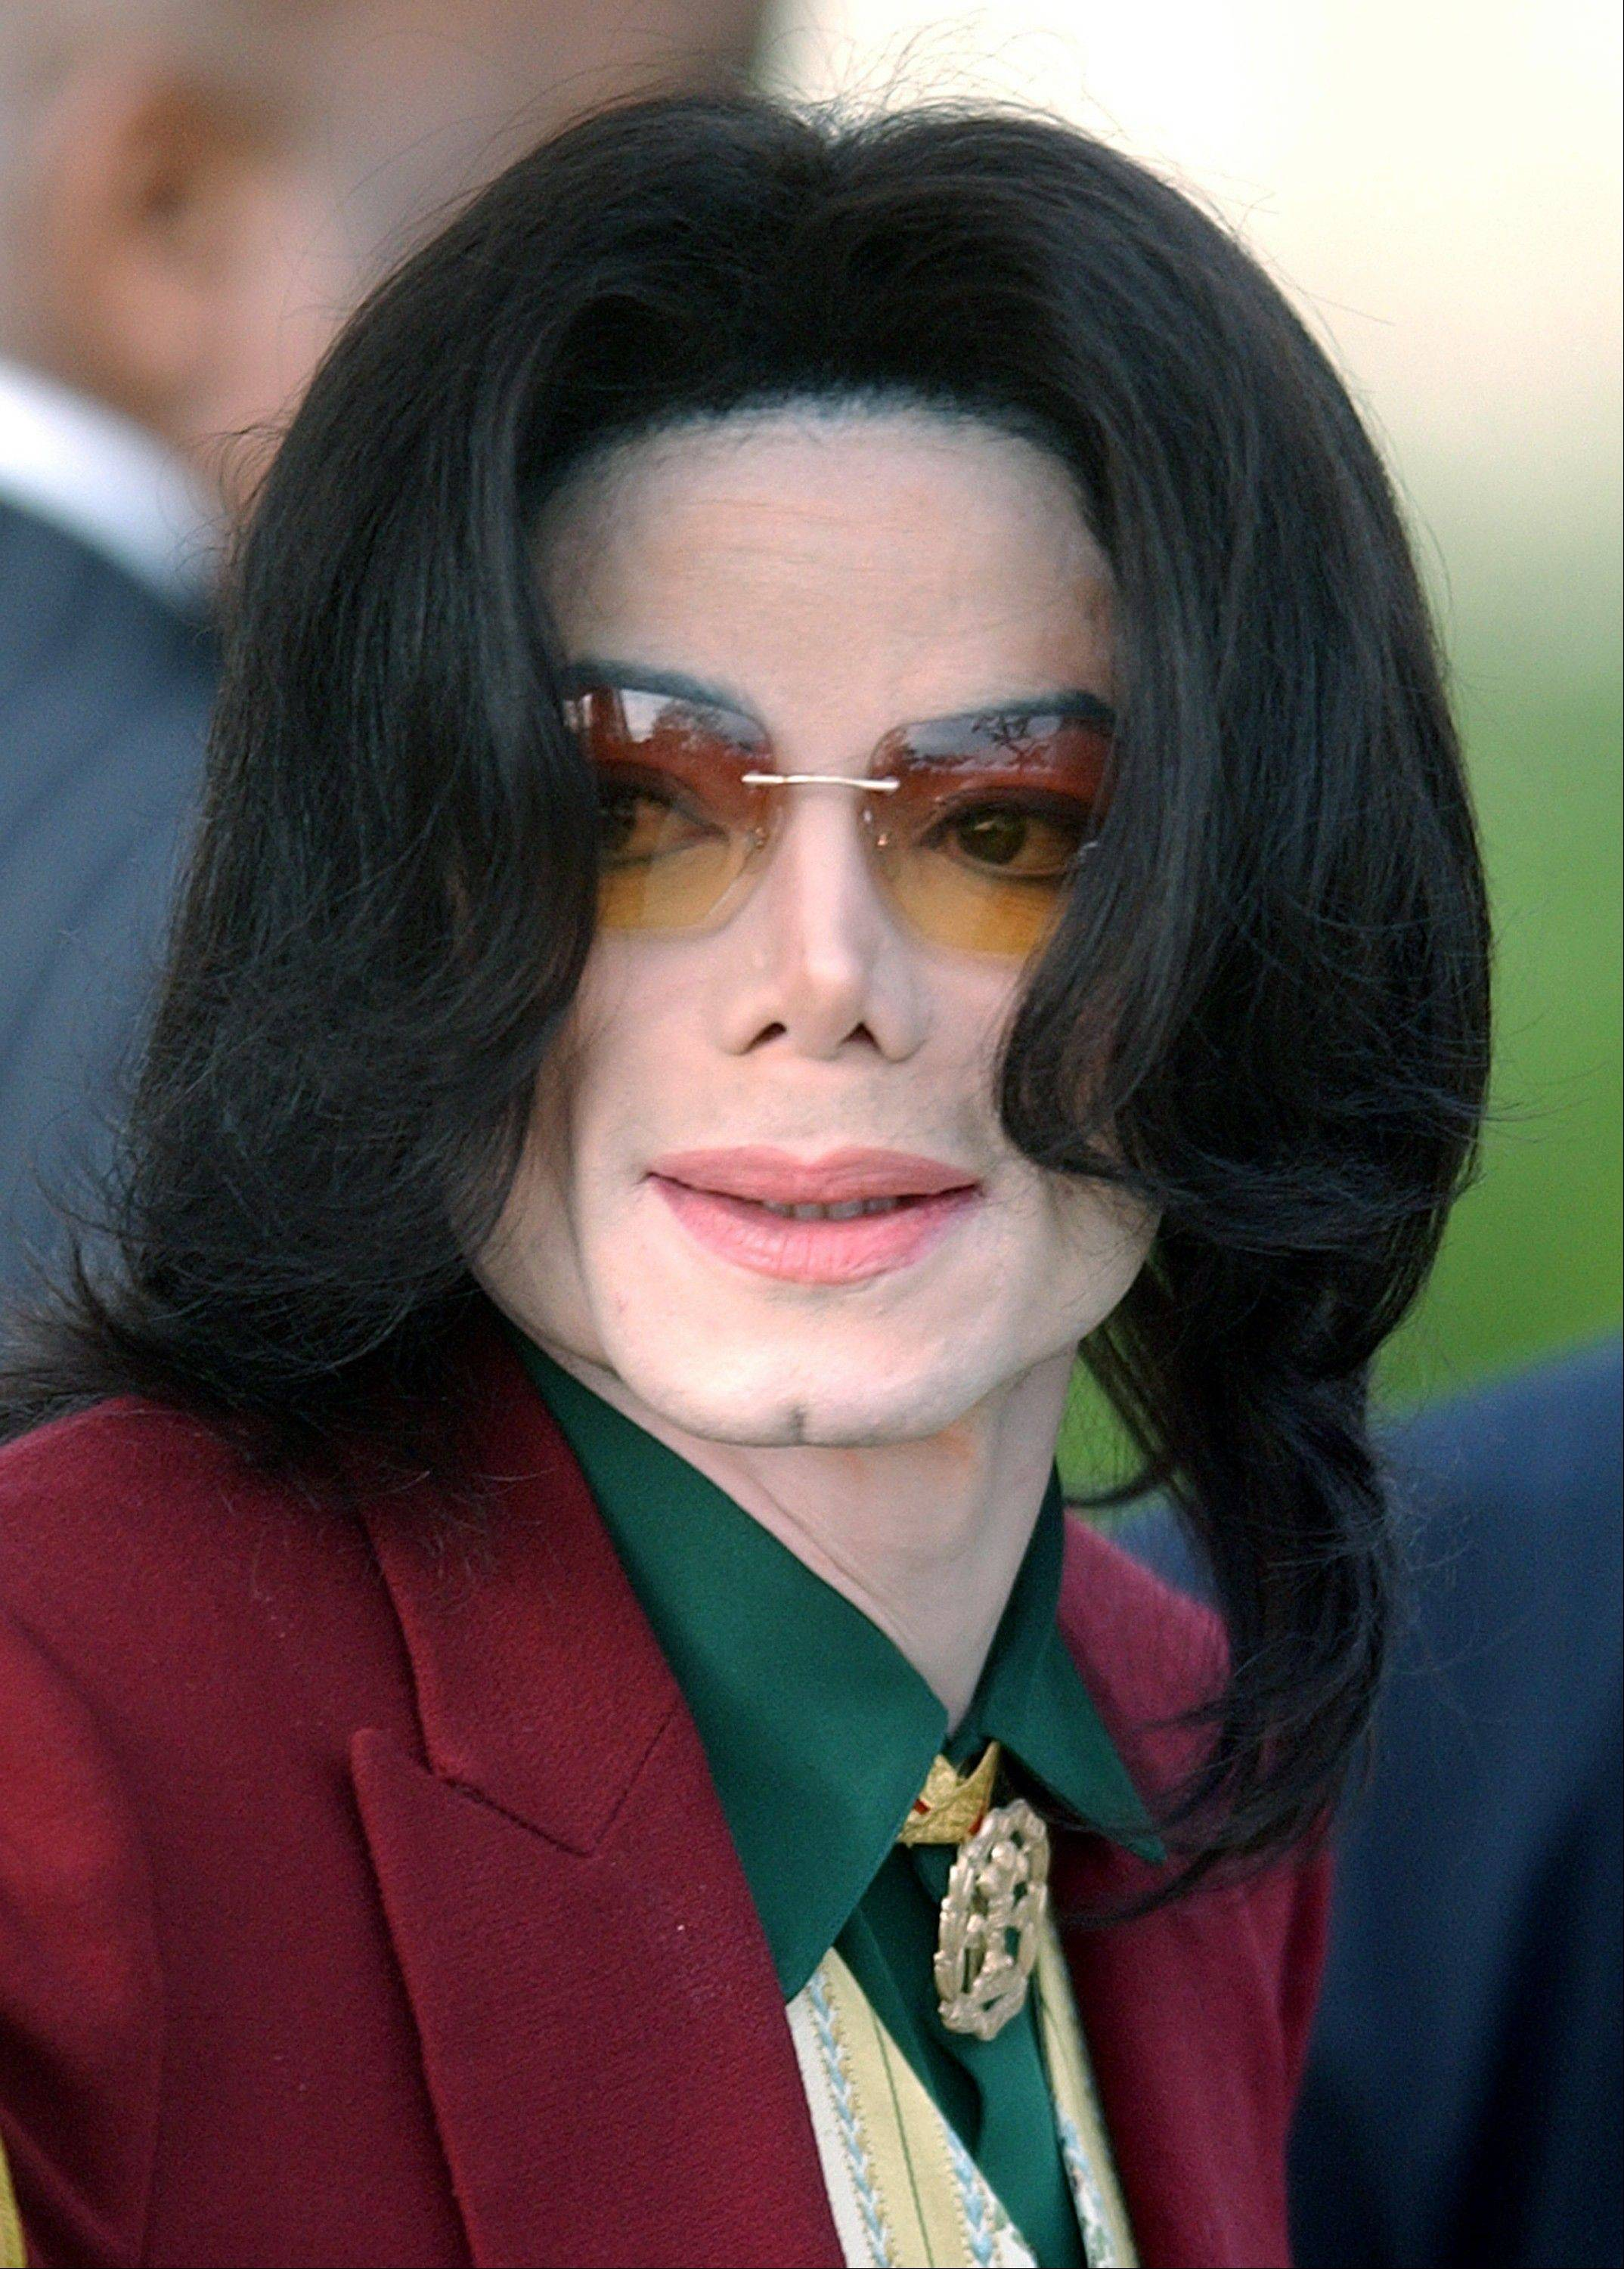 In this March 17, 2005, file photo, Michael Jackson arrives at the Santa Barbara County Courthouse in Santa Maria, Calif. Promoters of Jackson's planned 2009 comeback, described in emails released Saturday, Sept. 1, 2012, show they feared for the megastar's stability, saying he was out of shape and often consumed with self-doubt.